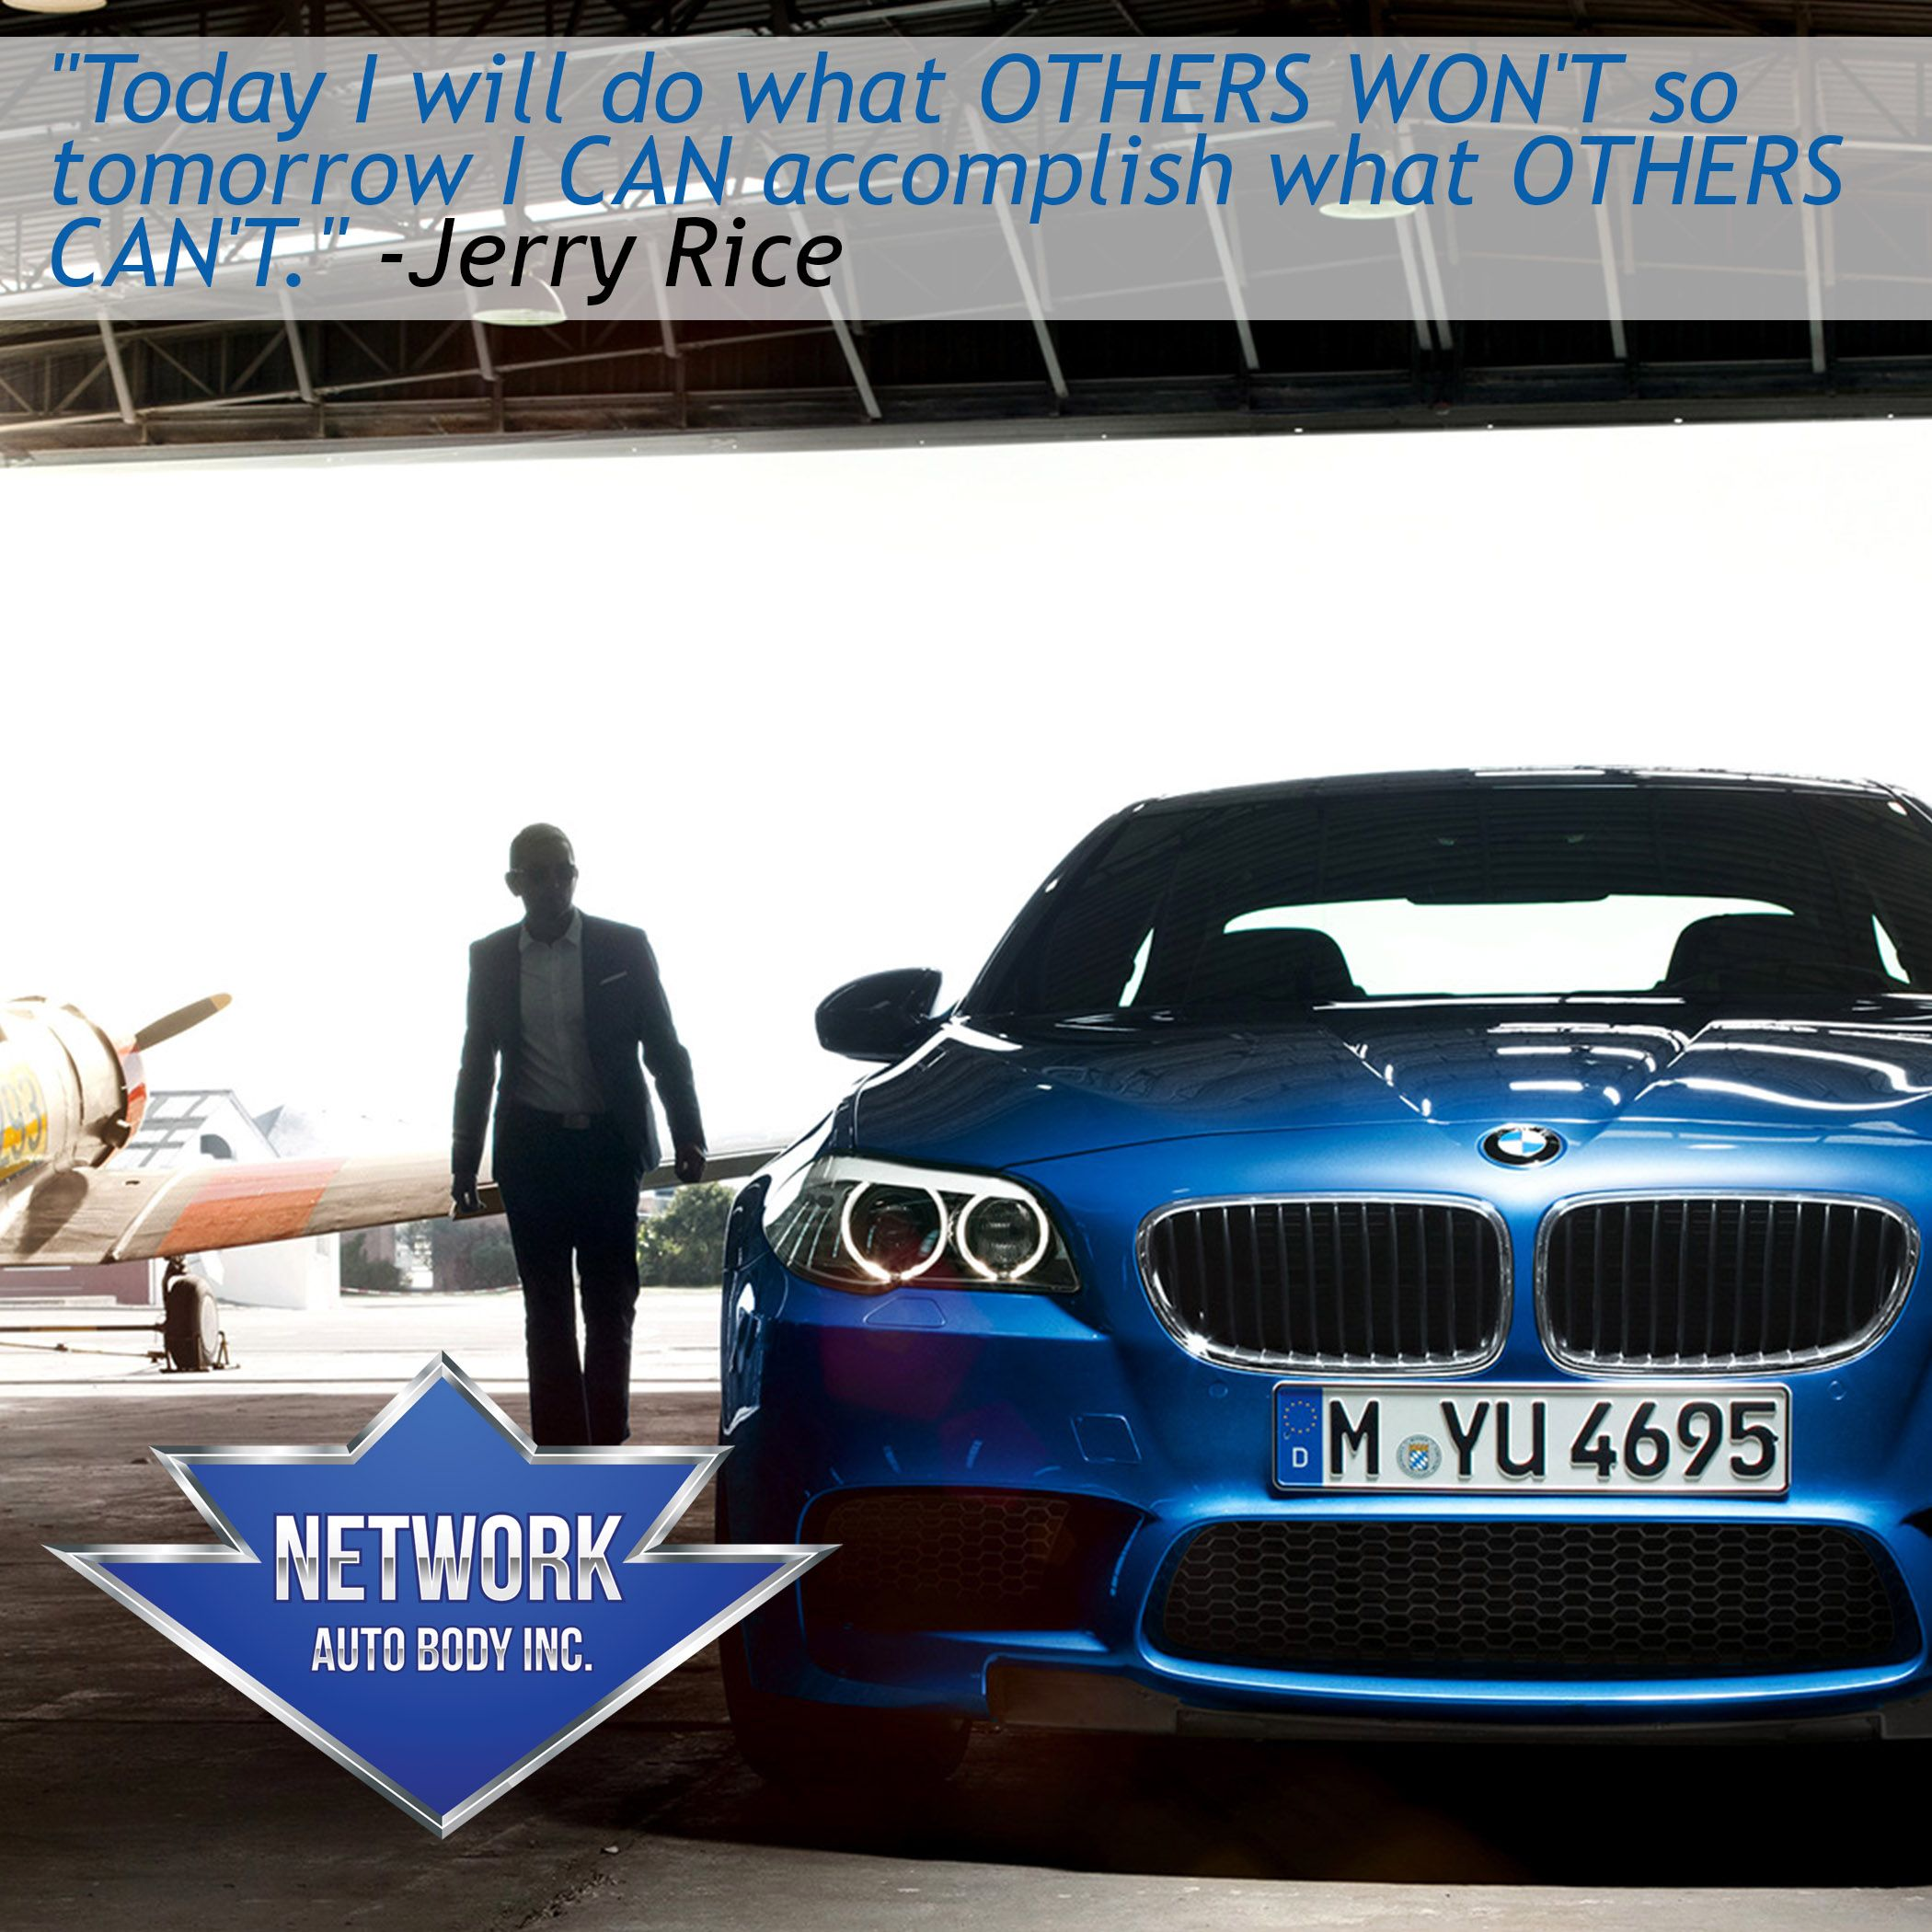 Bmw Quotes Monday Motivation Have A Great Week Mondaymotivation Autobody